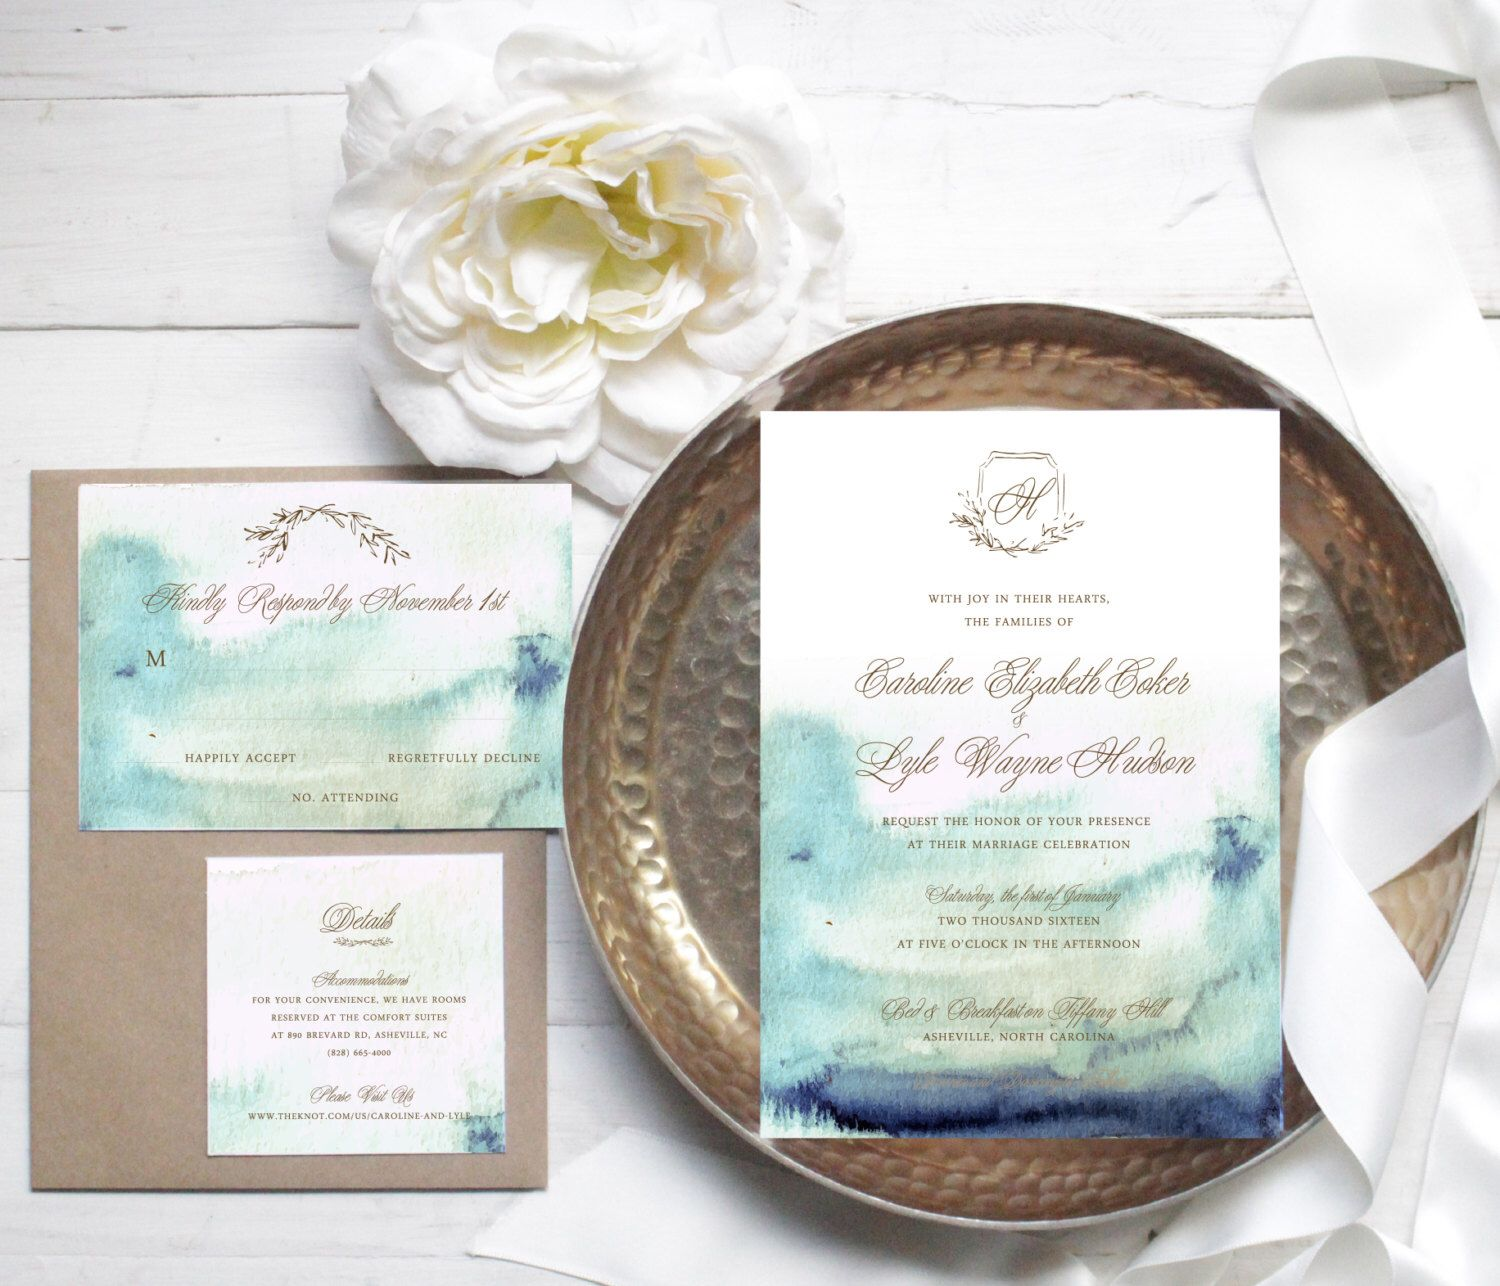 Elegant Blue Watercolor Wedding Invitation // Available in Gold Foil Lettering by SugaredFigPaperie on Etsy https://www.etsy.com/listing/464529695/elegant-blue-watercolor-wedding